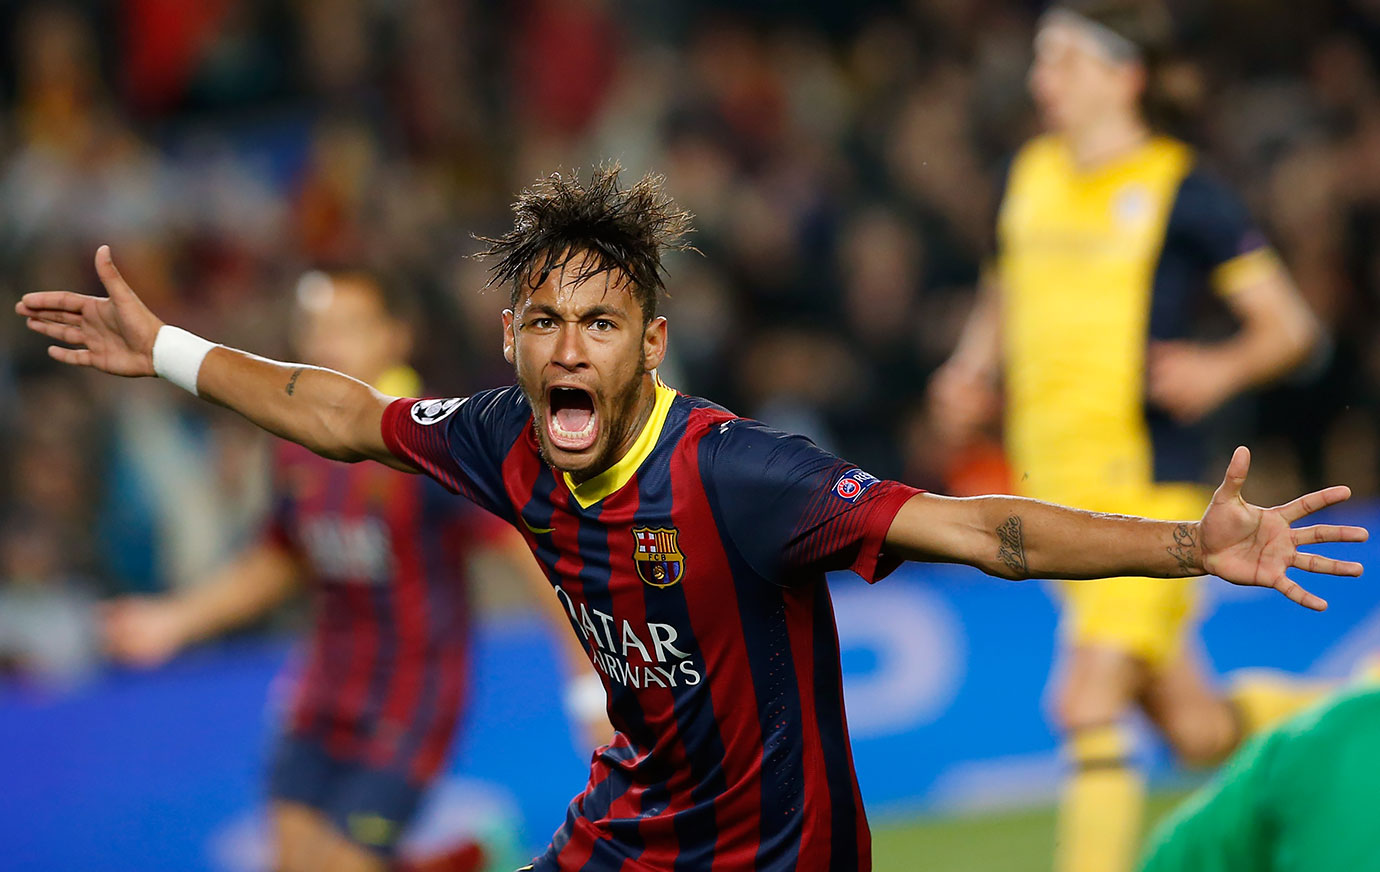 Neymar celebrates after scoring Barcelona's first goal during a first leg quarterfinal Champions League match against Atletico Madrid on April 1, 2014 at Camp Nou in Barcelona, Spain.